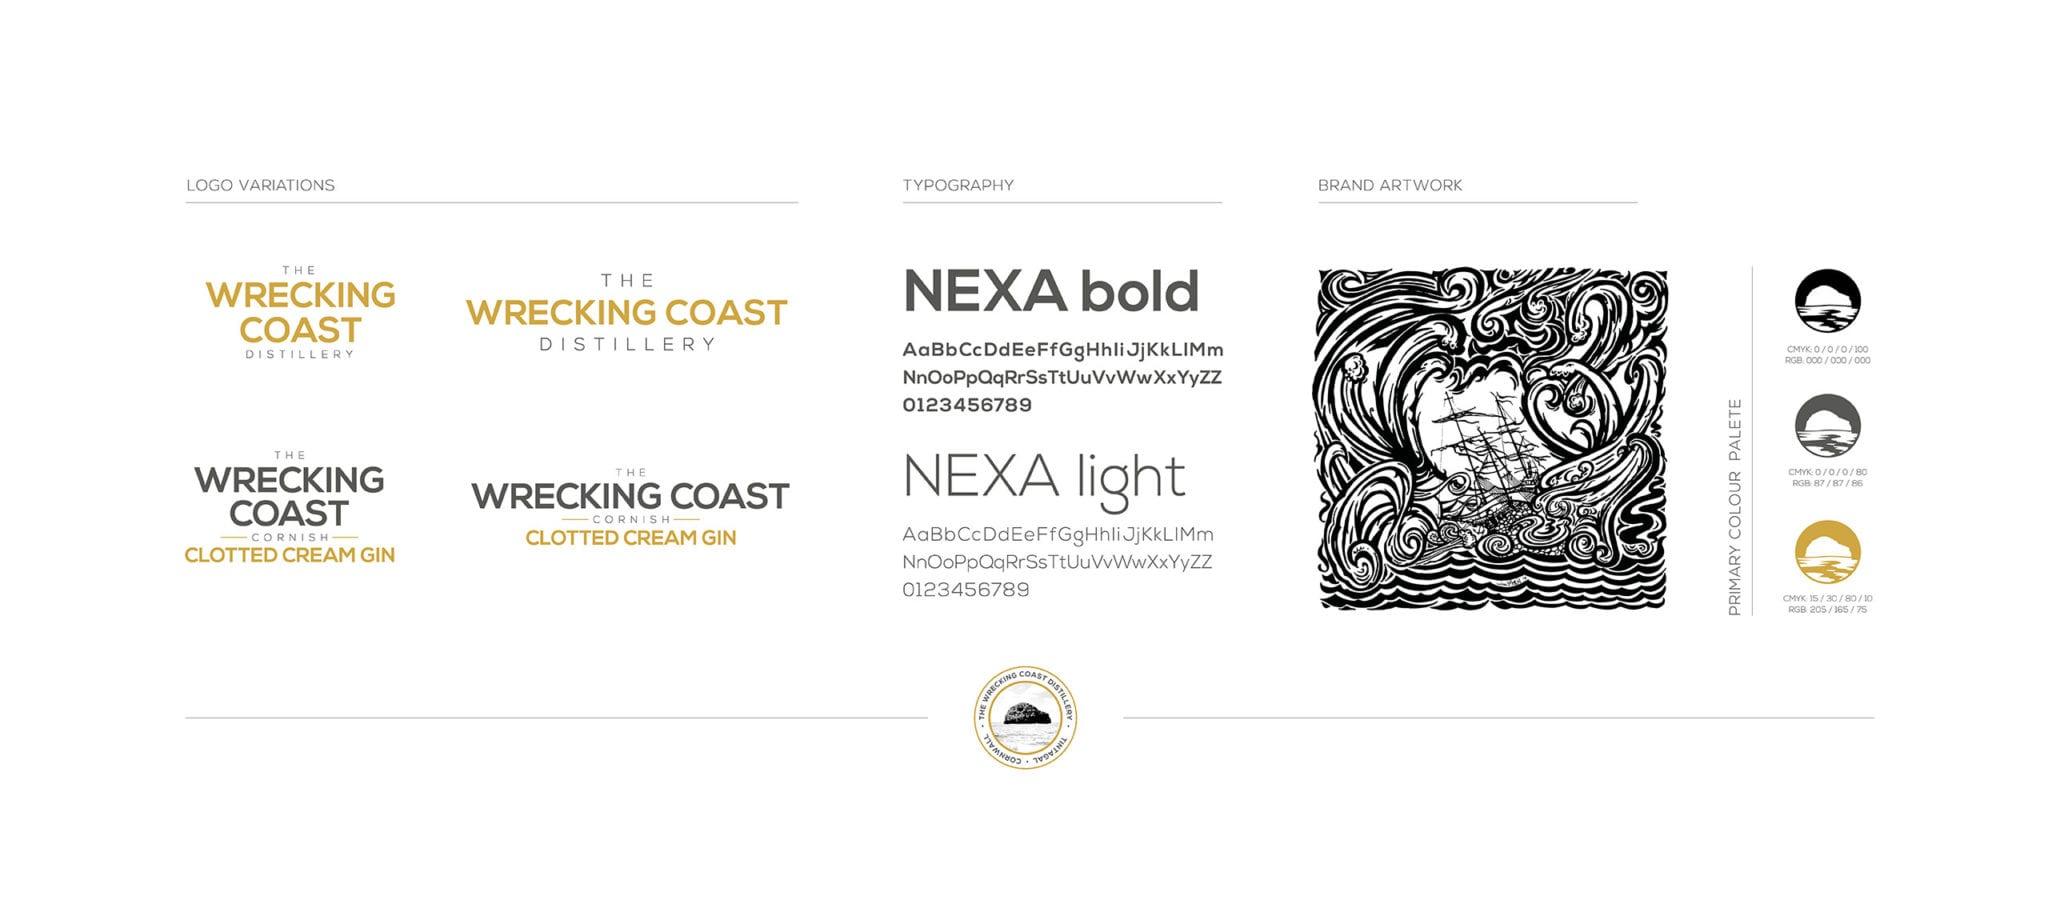 The Wrecking Coast Distillery Identity brand guide examples